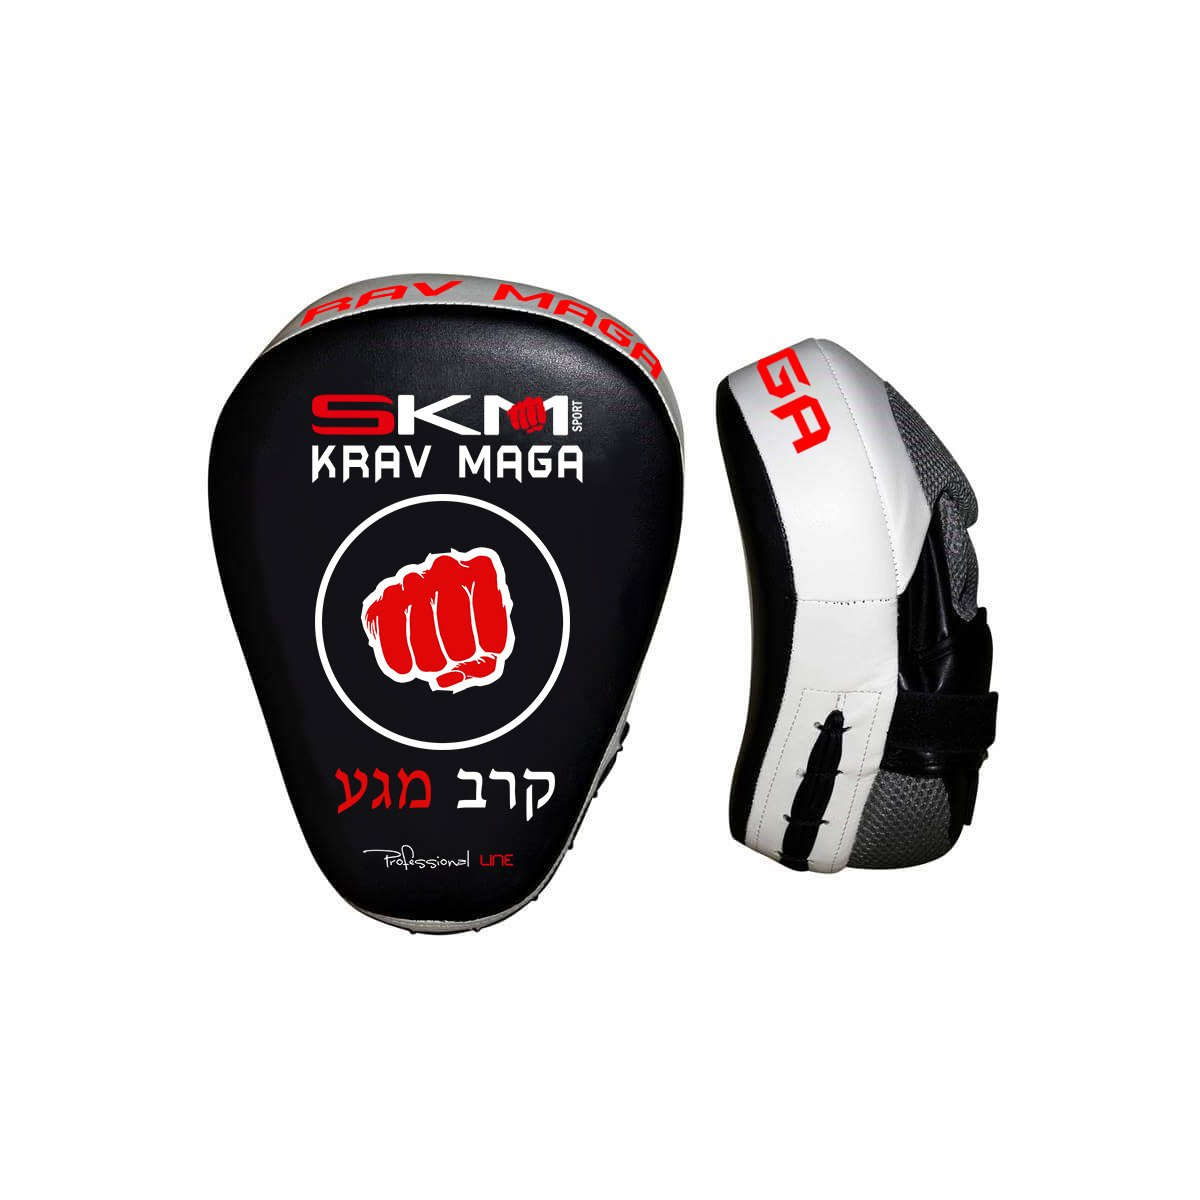 Krav Maga Wing Chun Other Martial Arts Thai Boxing Boxercise Kickboxing MMA Isuper 1pcs Punch Mitts Suitable for Boxing Taekwondo Karate